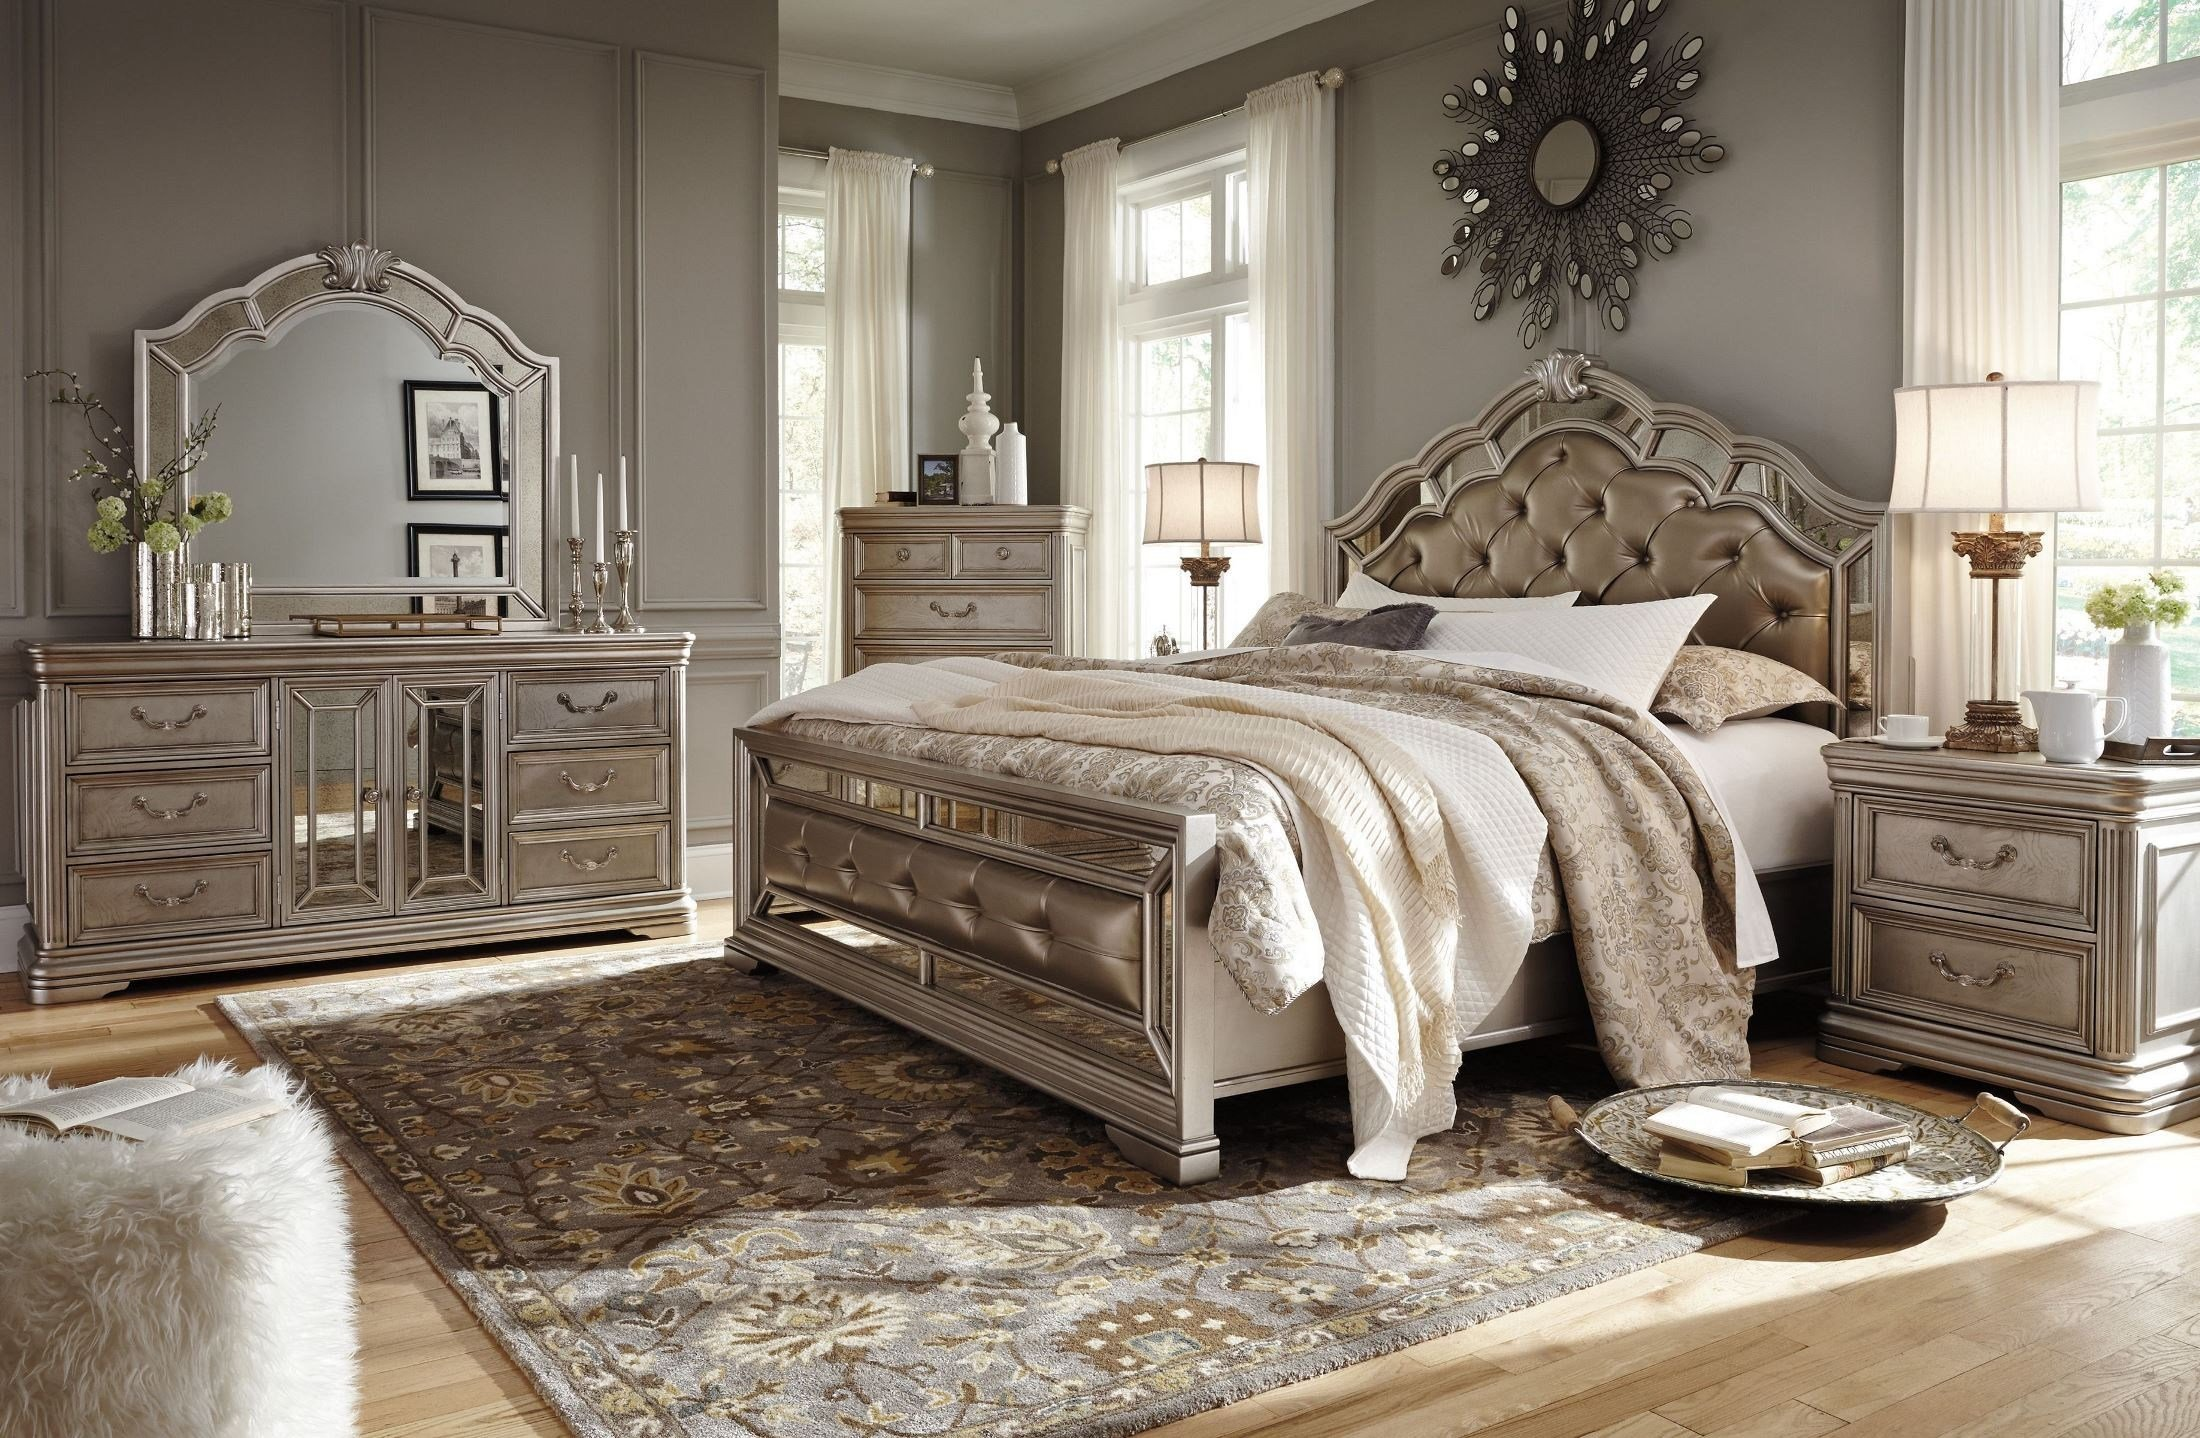 Best Birlanny Silver Upholstered Panel Bedroom Set B720 57 54 96 Ashley With Pictures